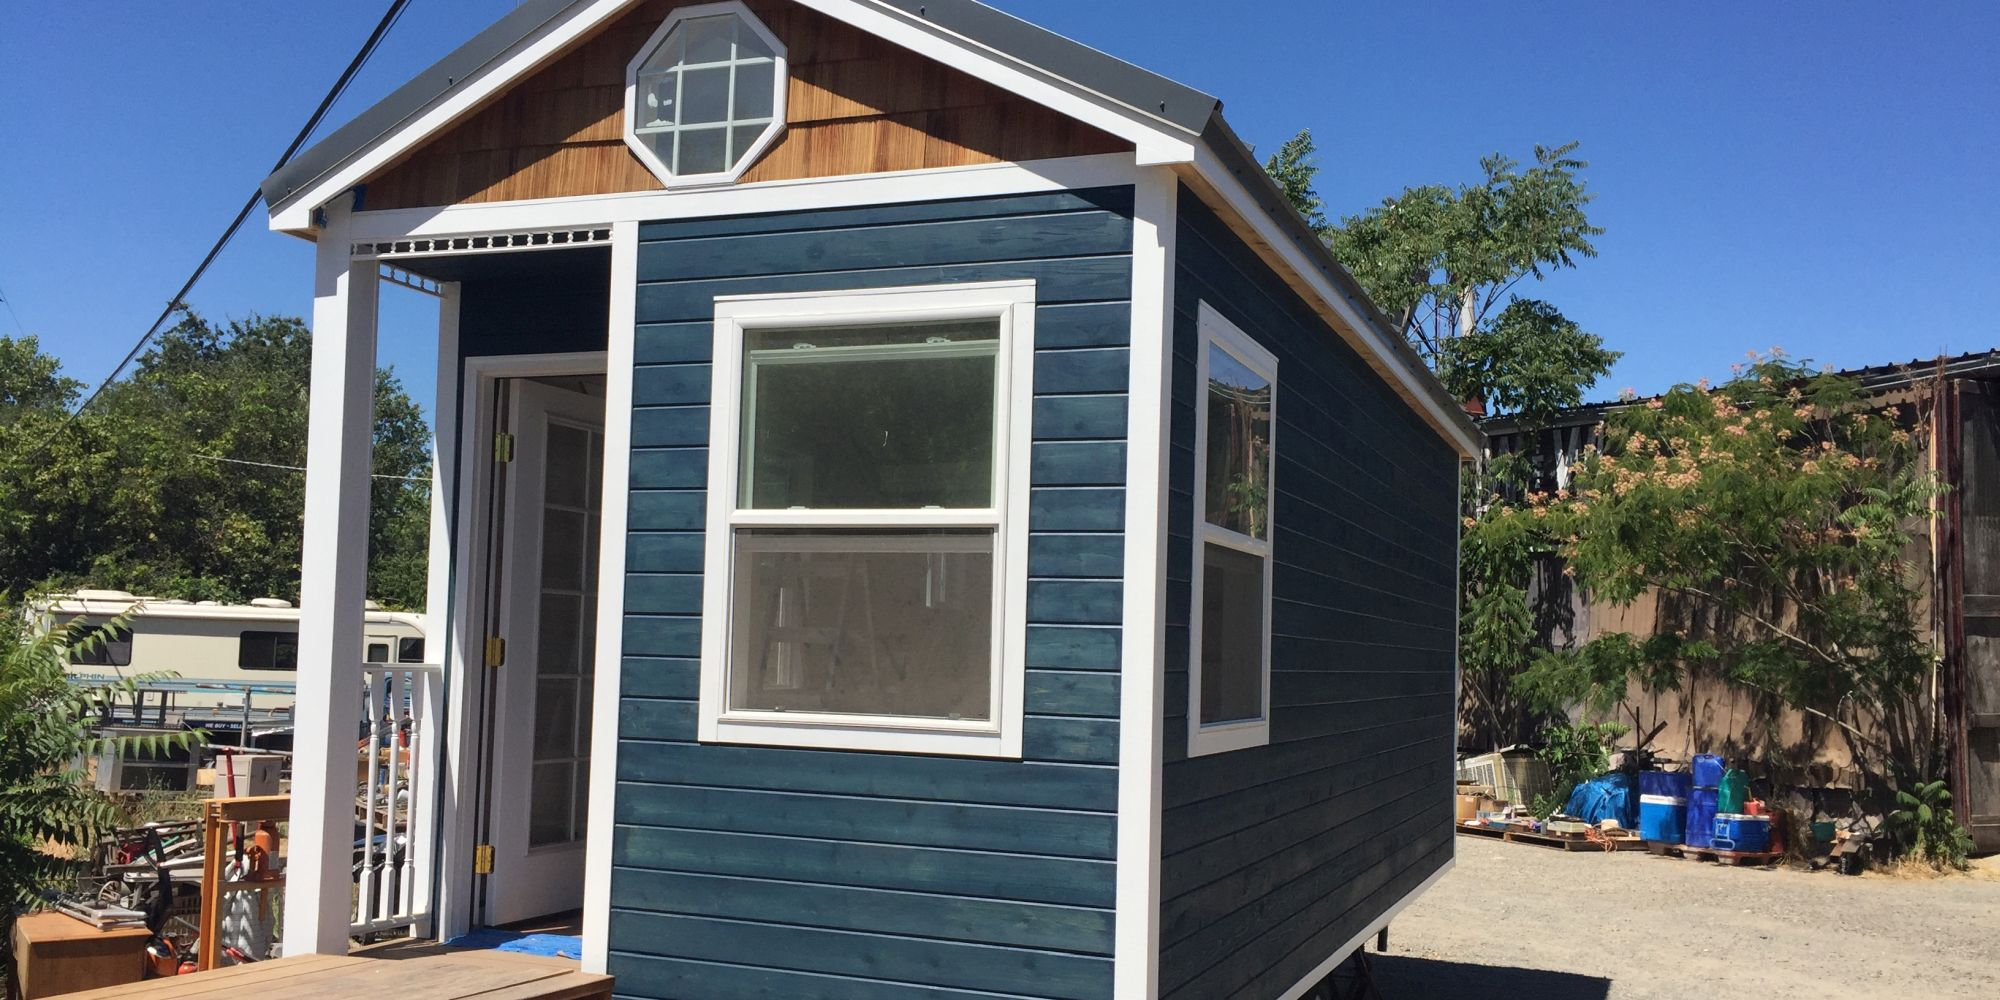 California Tiny House Builder Sierra